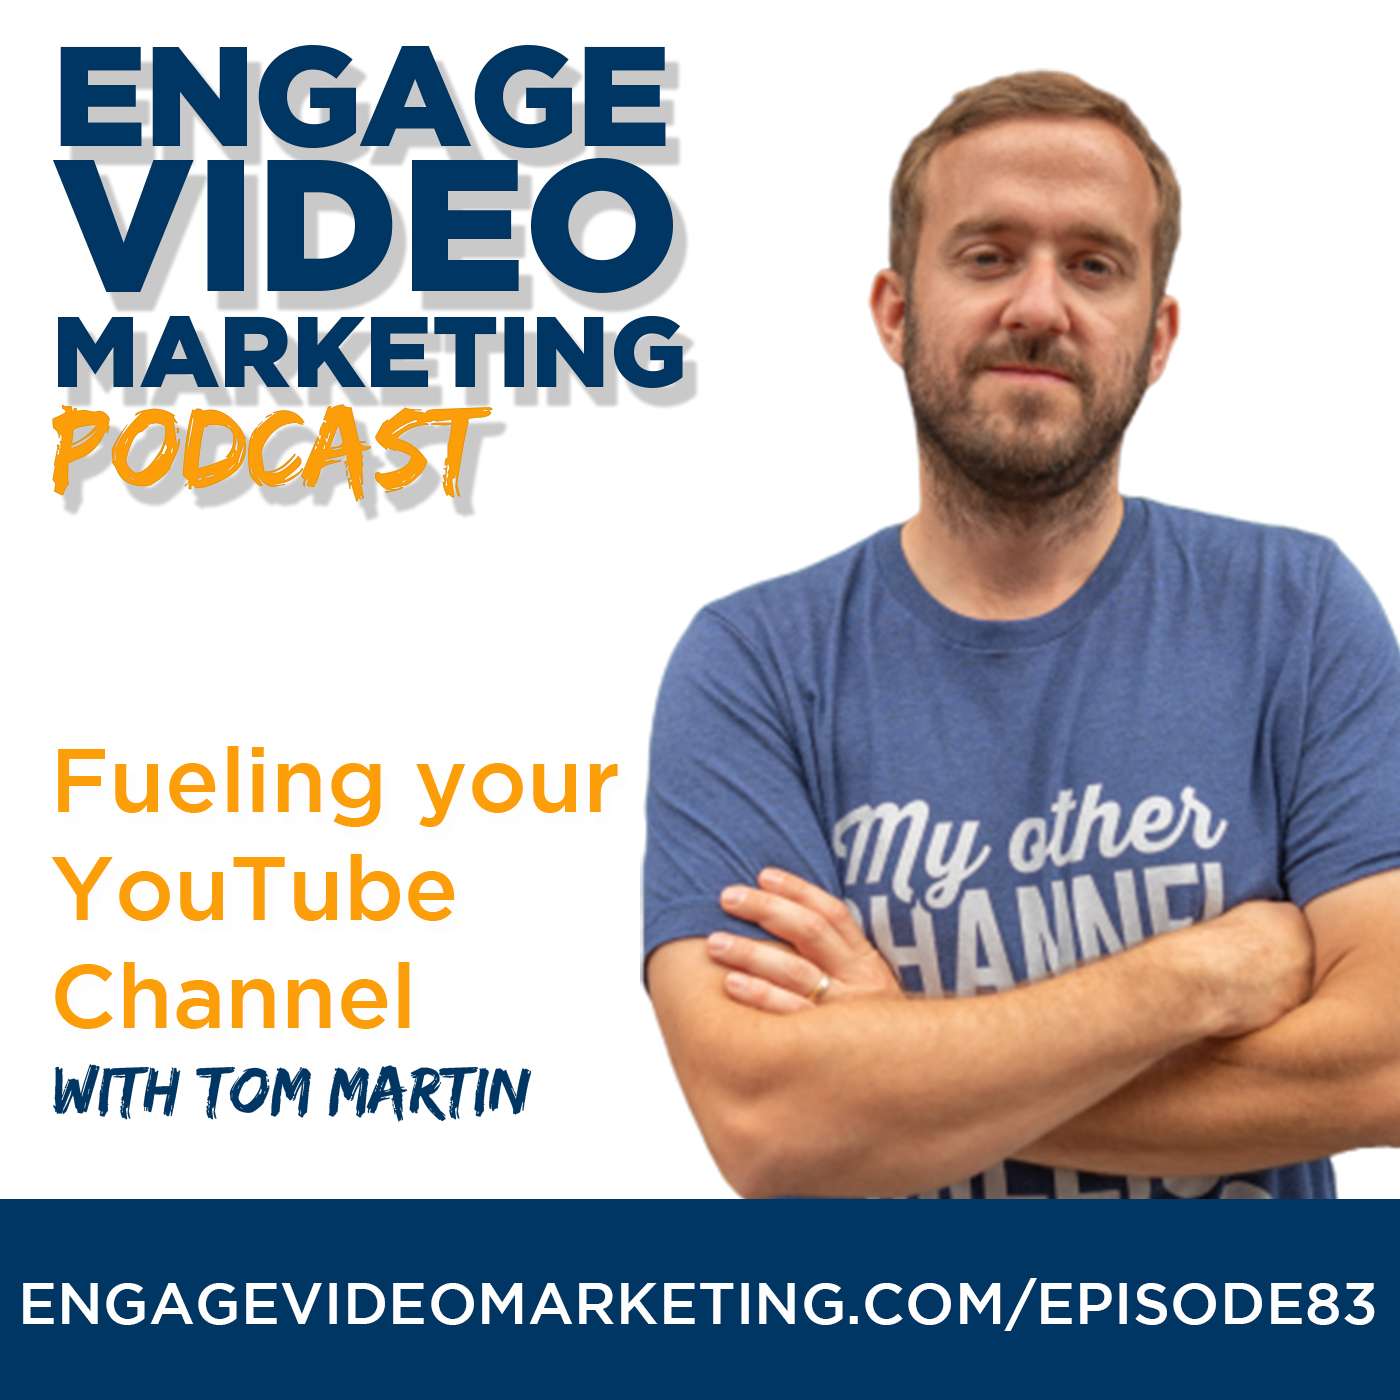 Fueling your YouTube Channel with Tom Martin